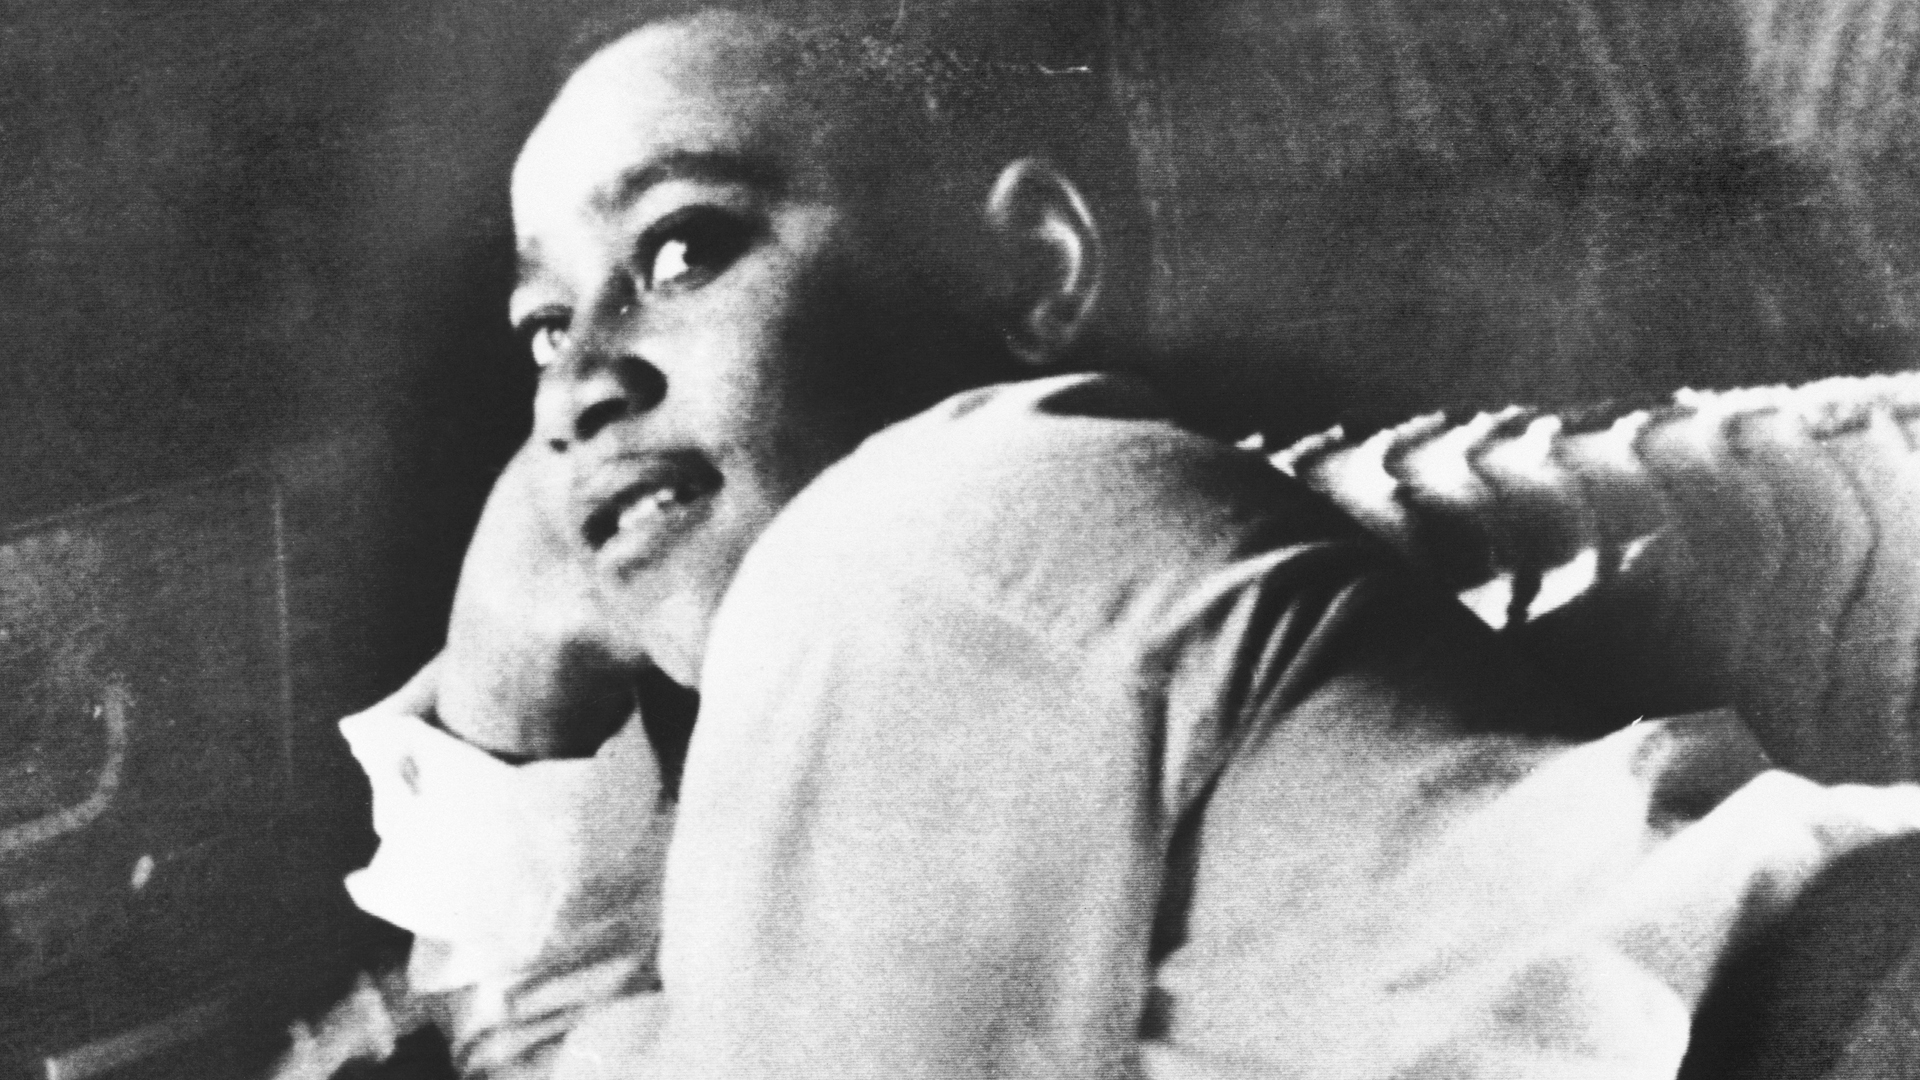 emmett till murder Standing as one of the most-heinous, race-motivated crimes in america's history, the kidnapping and savage lynching of 14-year-old emmett till (pictured) in mississippi still stirs embers of.